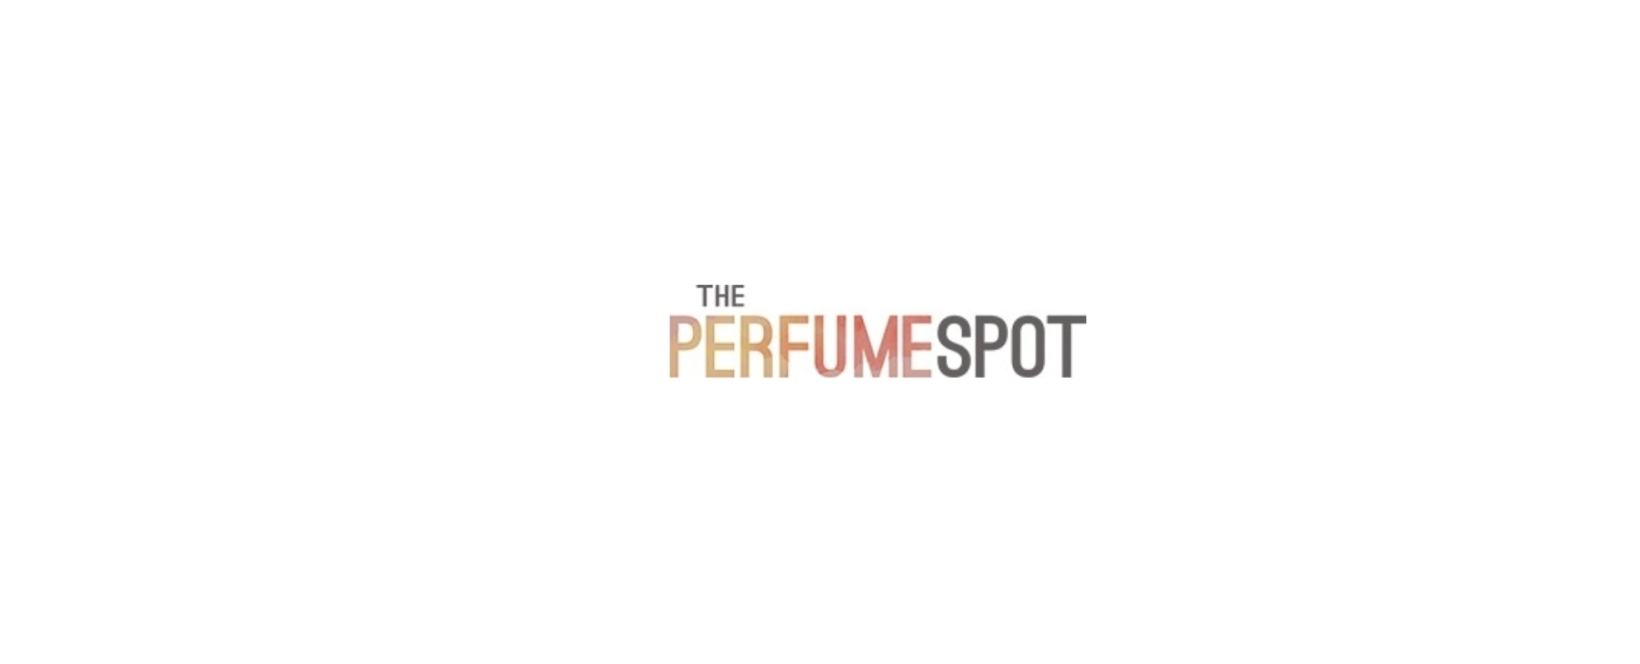 The Perfume Spot Discount Code 2021